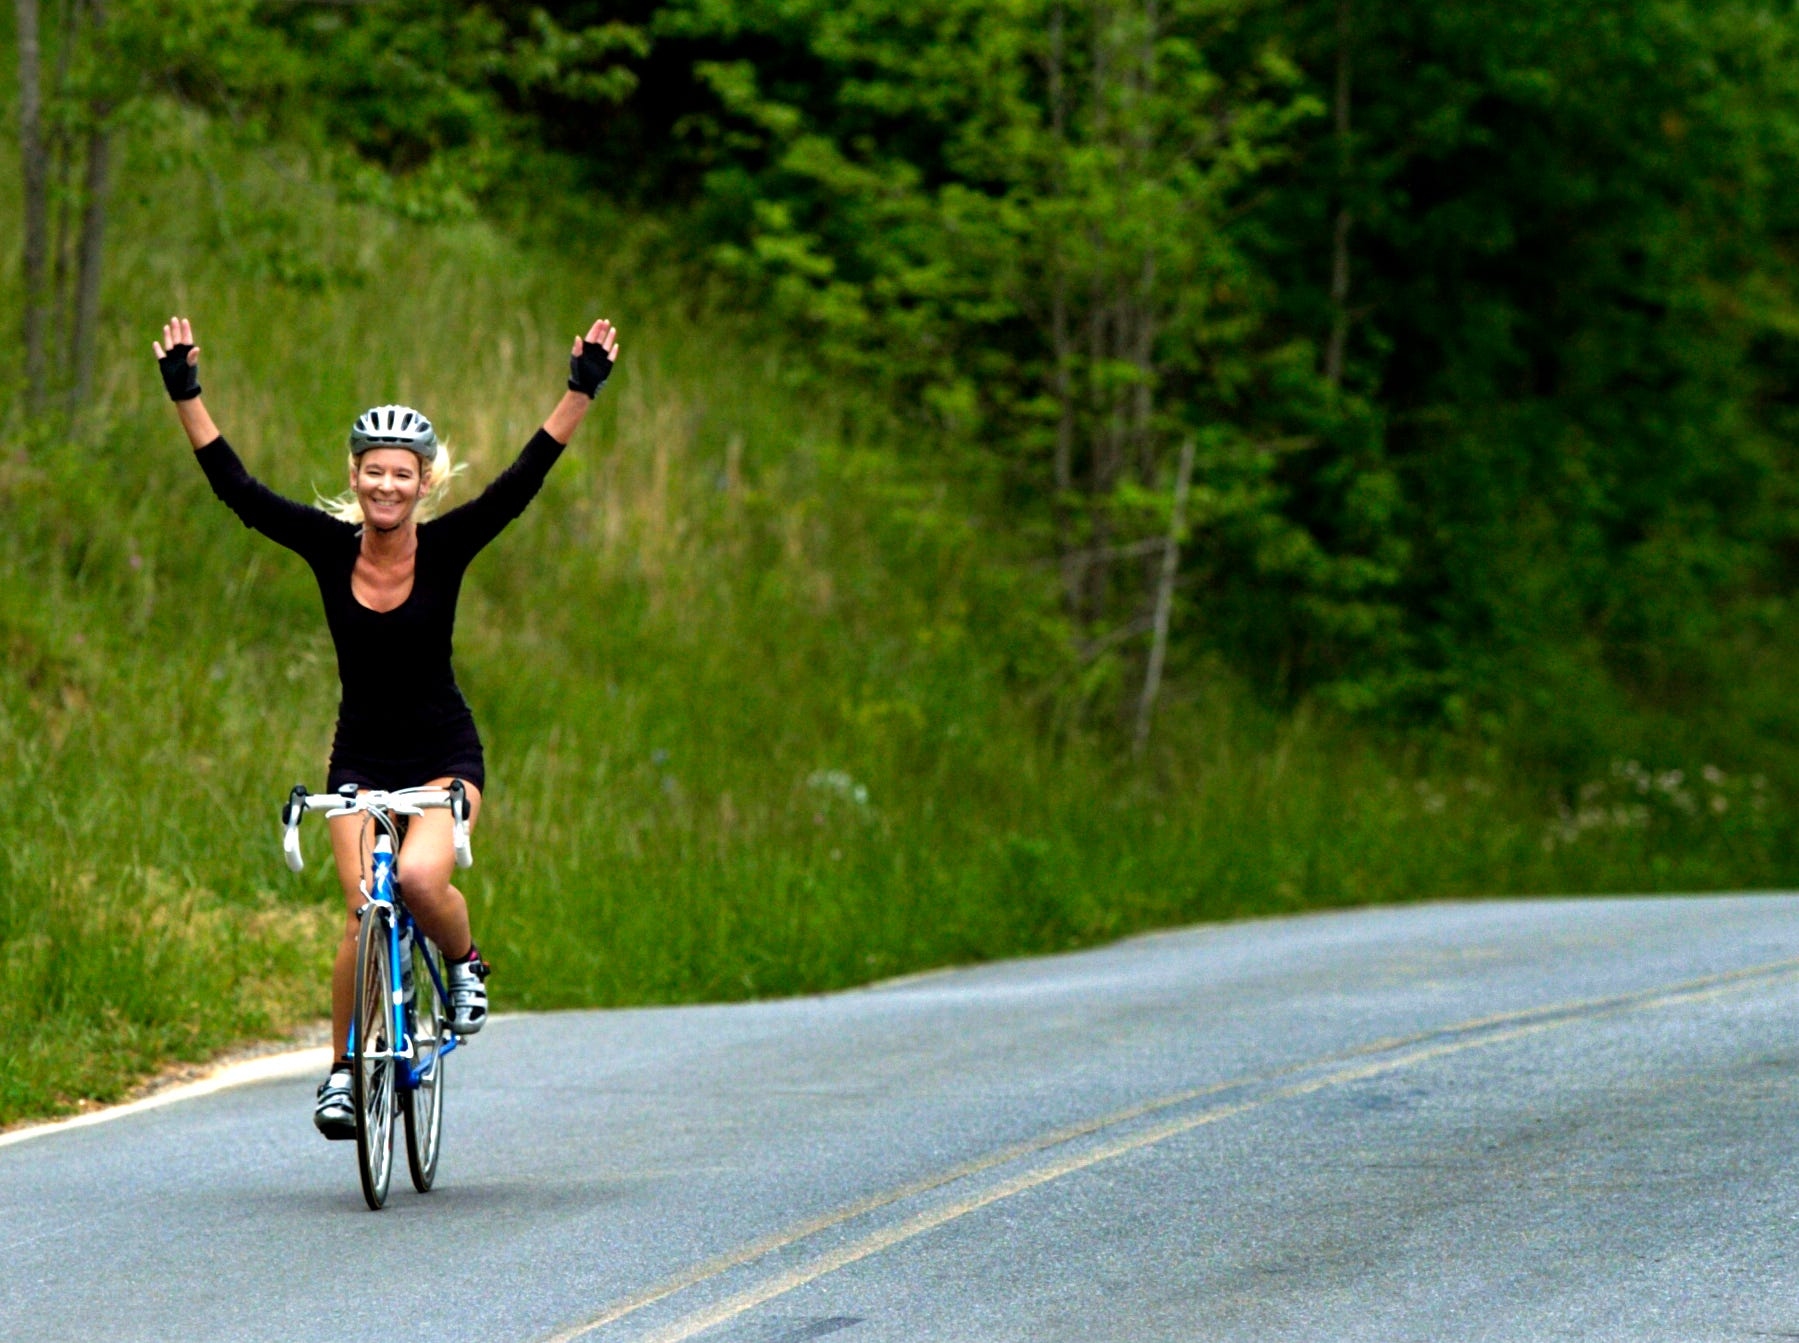 Reporter and novice cyclist Jamie Satterfield strikes a Lance Armstrong like pose while riding back down the hill from practicing for an upcoming Southern Cycling Operations' annual English Mountain Challenge Ride on May 8, 2008.